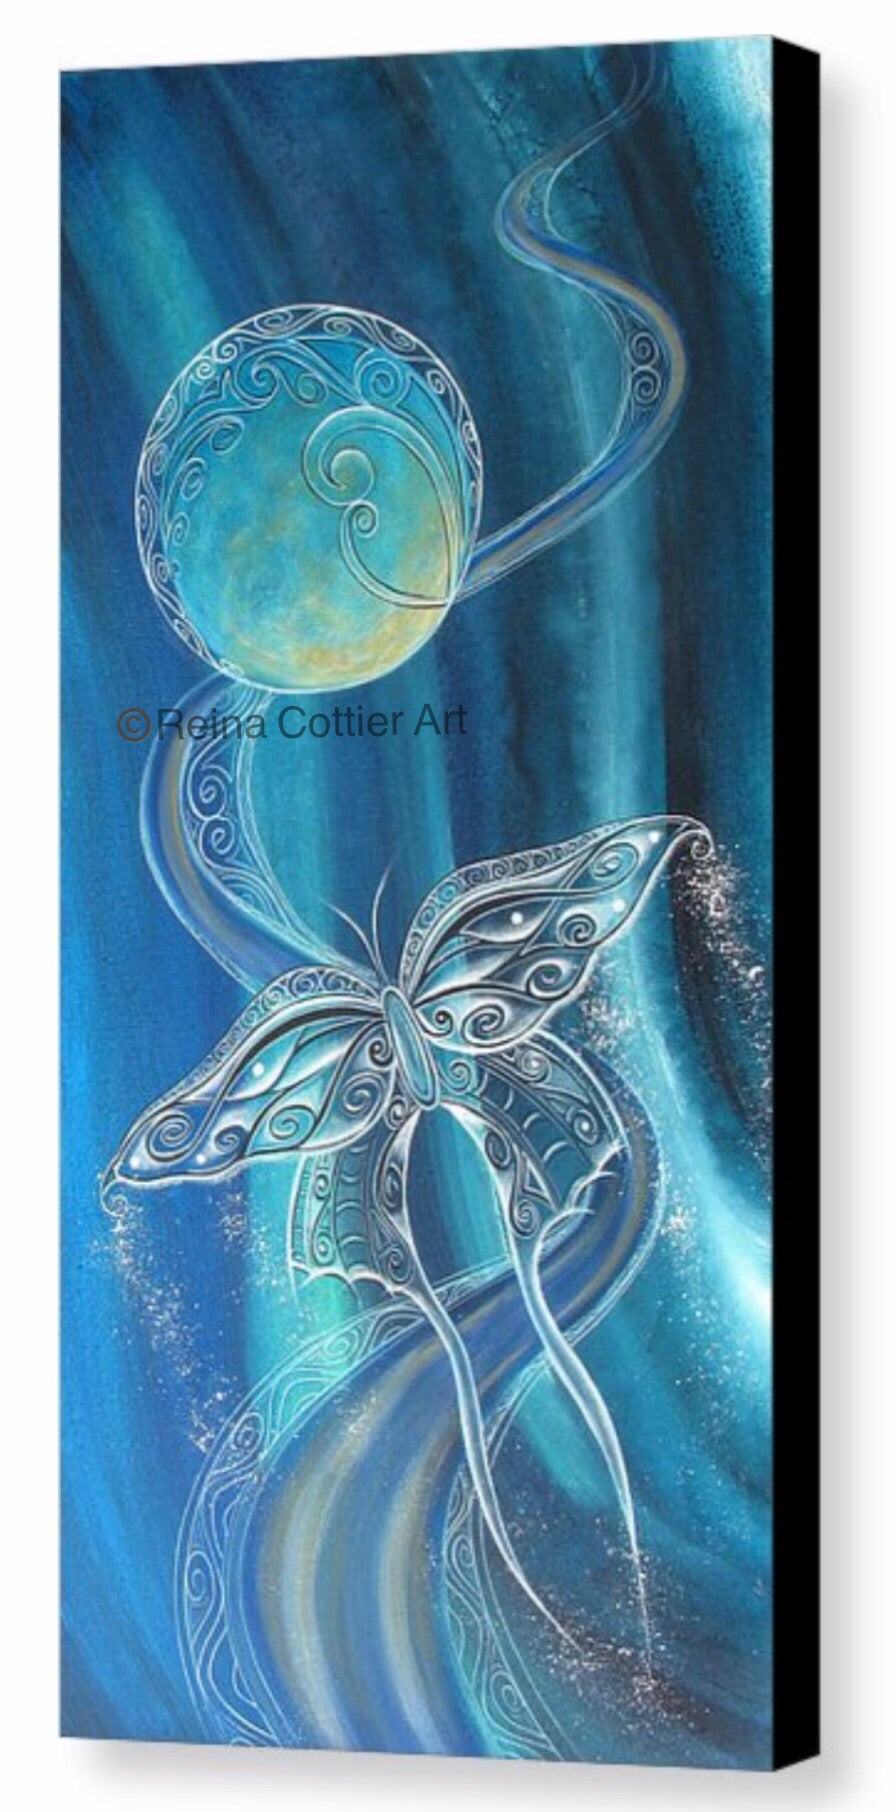 Canvas Print - Fly Free (3 sizes)